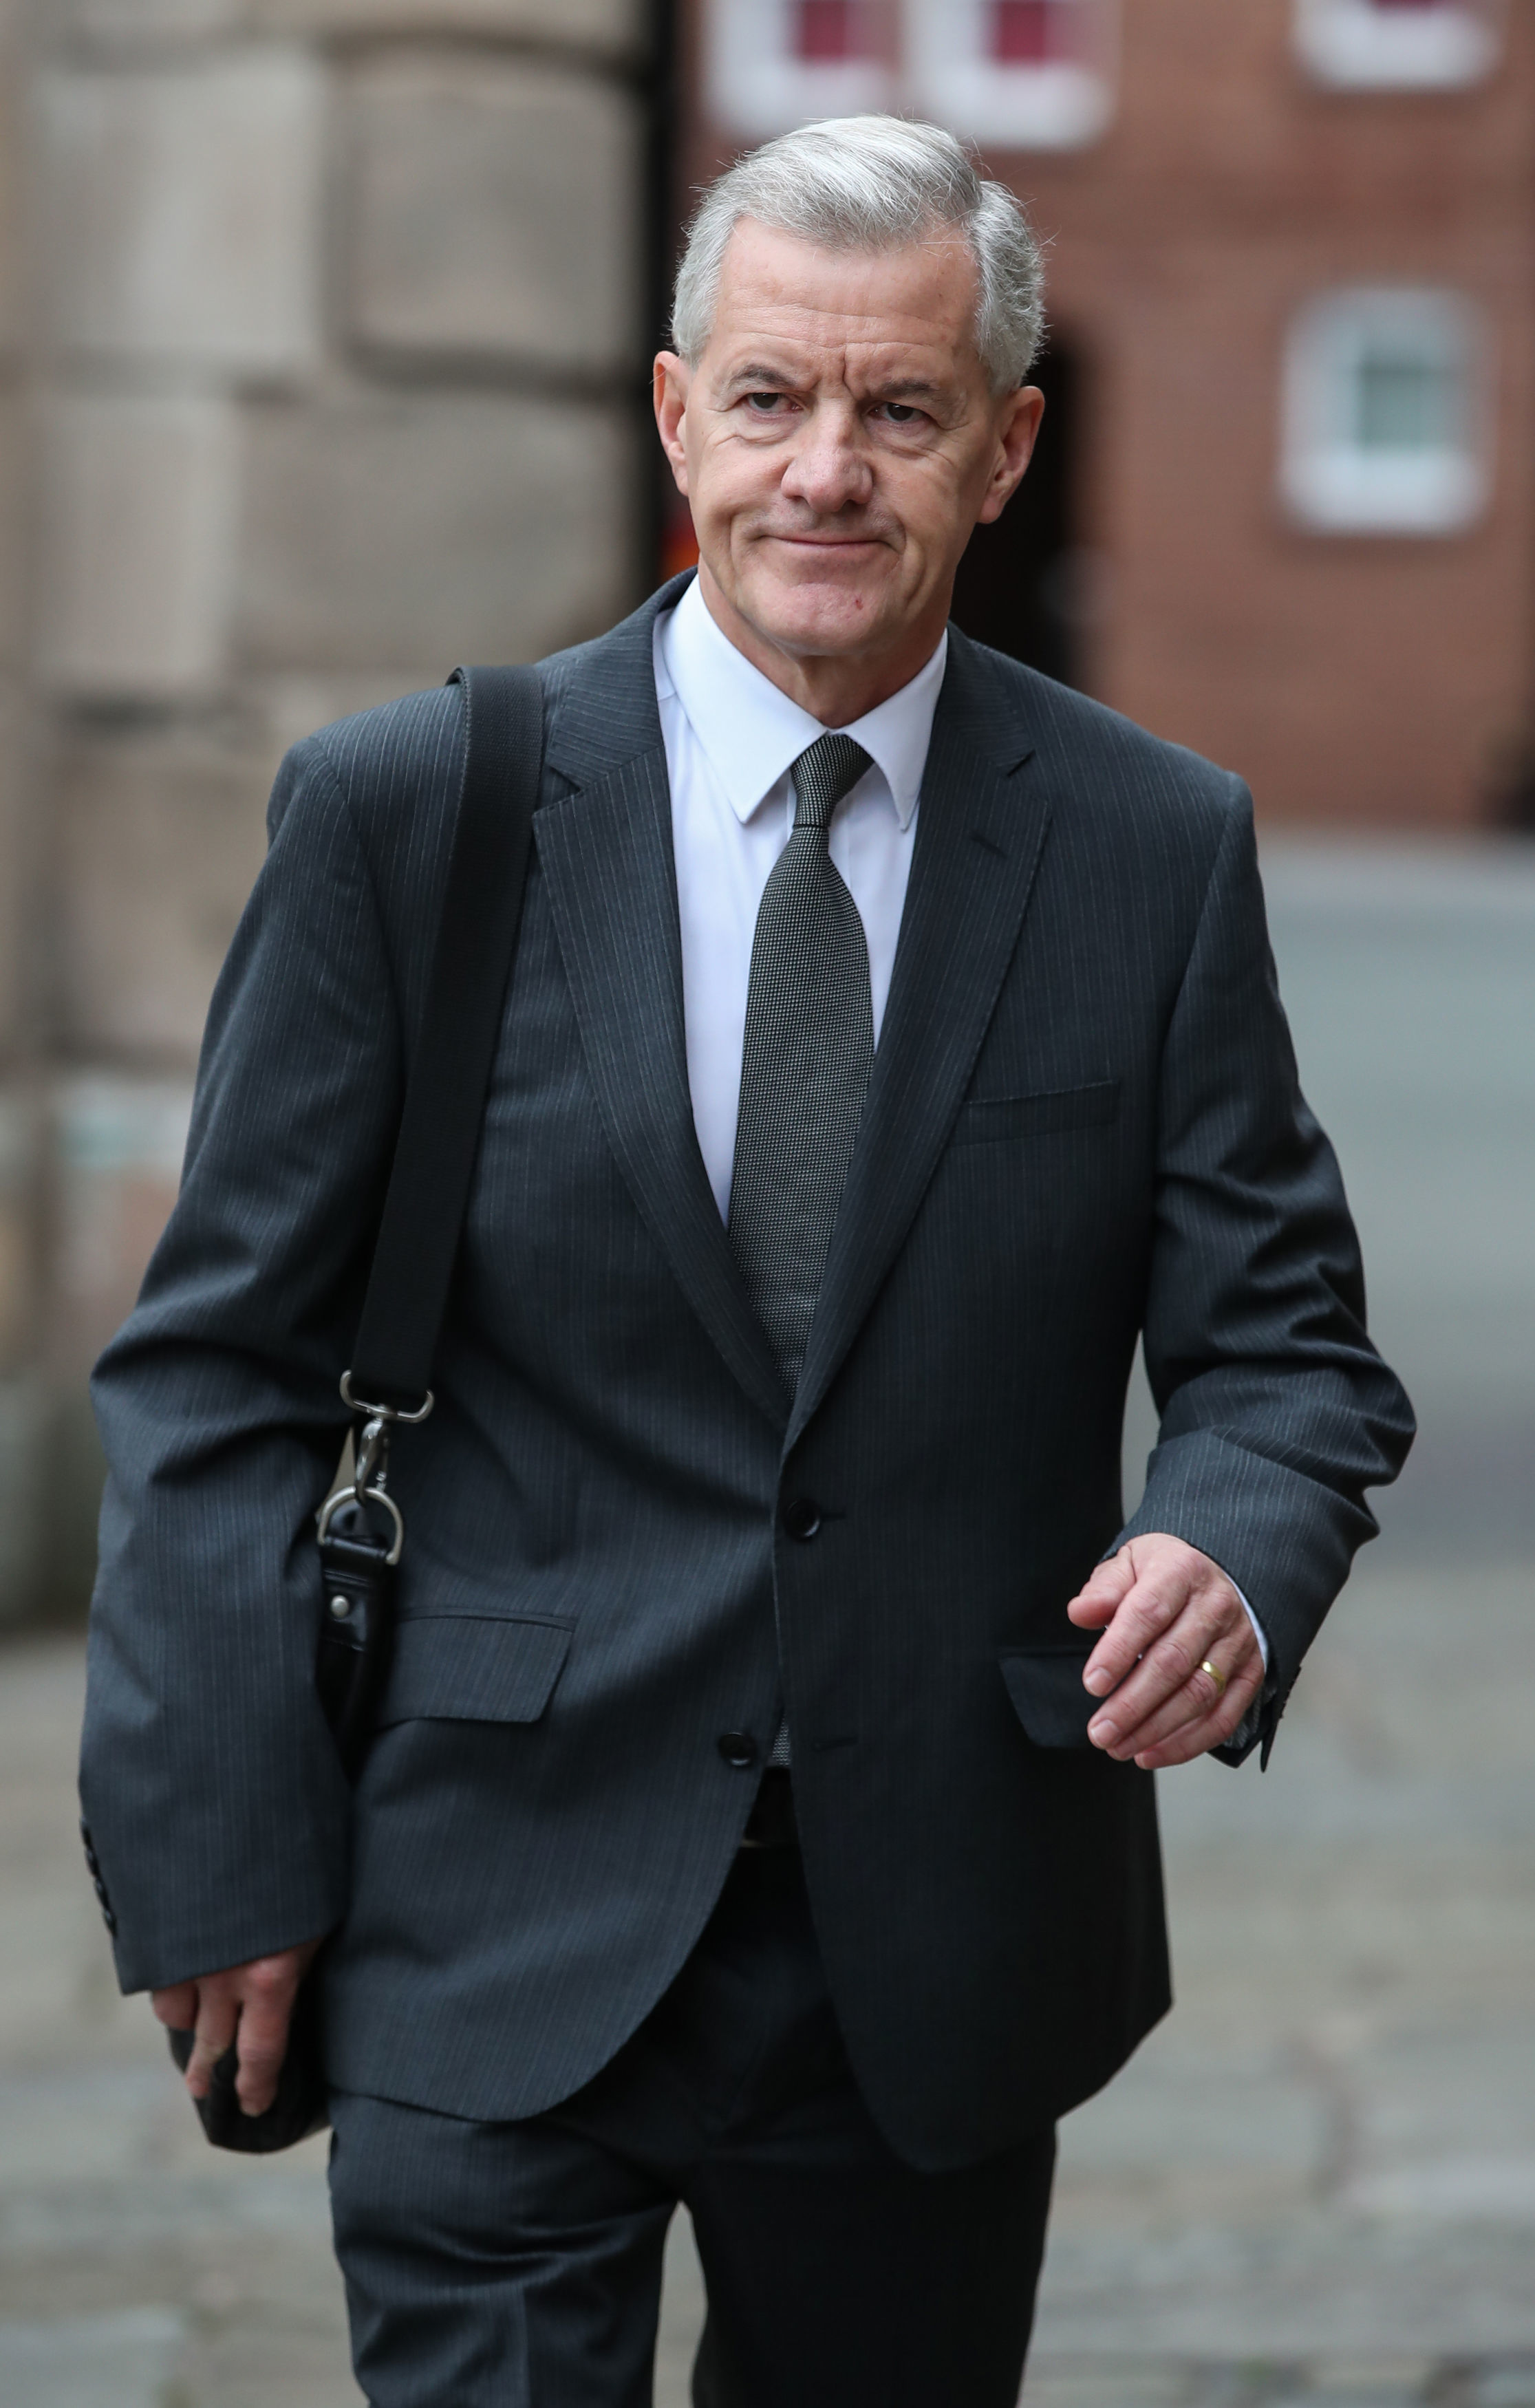 Paul McCann a former football coach at Crewe Alexandra arrives at Chester Crown Court (Picture: Peter Byrne/PA Wire)